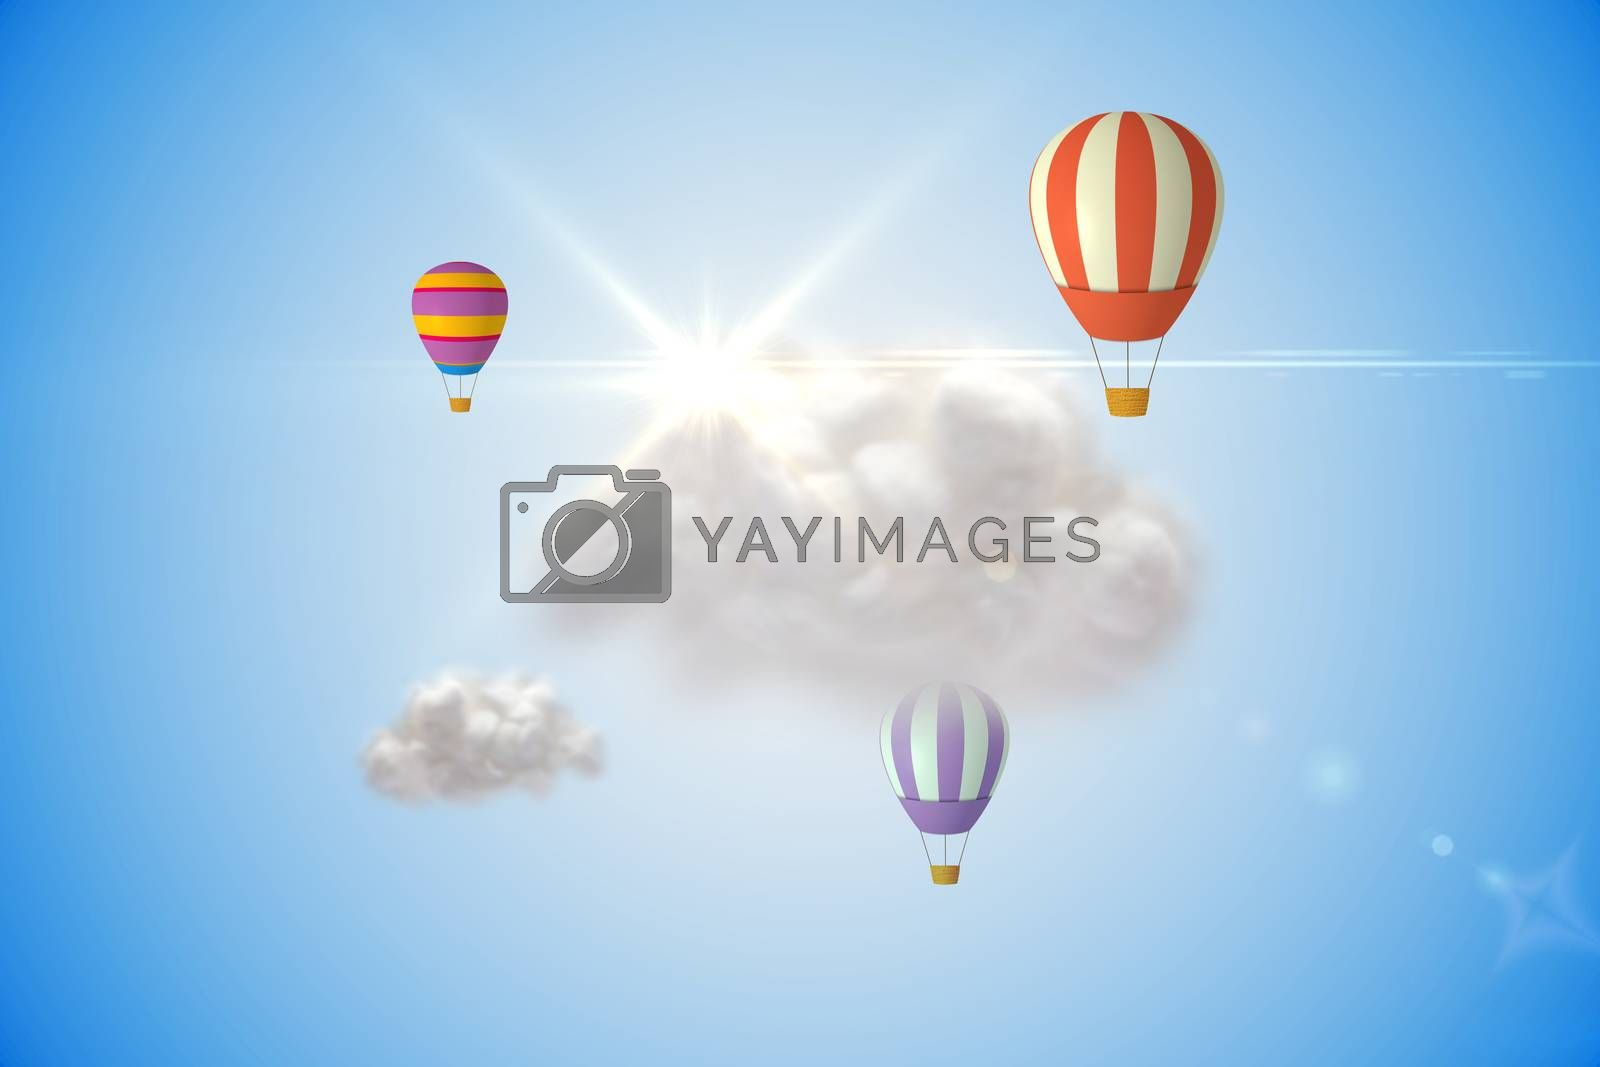 Royalty free image of Cloud computing graphic with hot air balloons by Wavebreakmedia